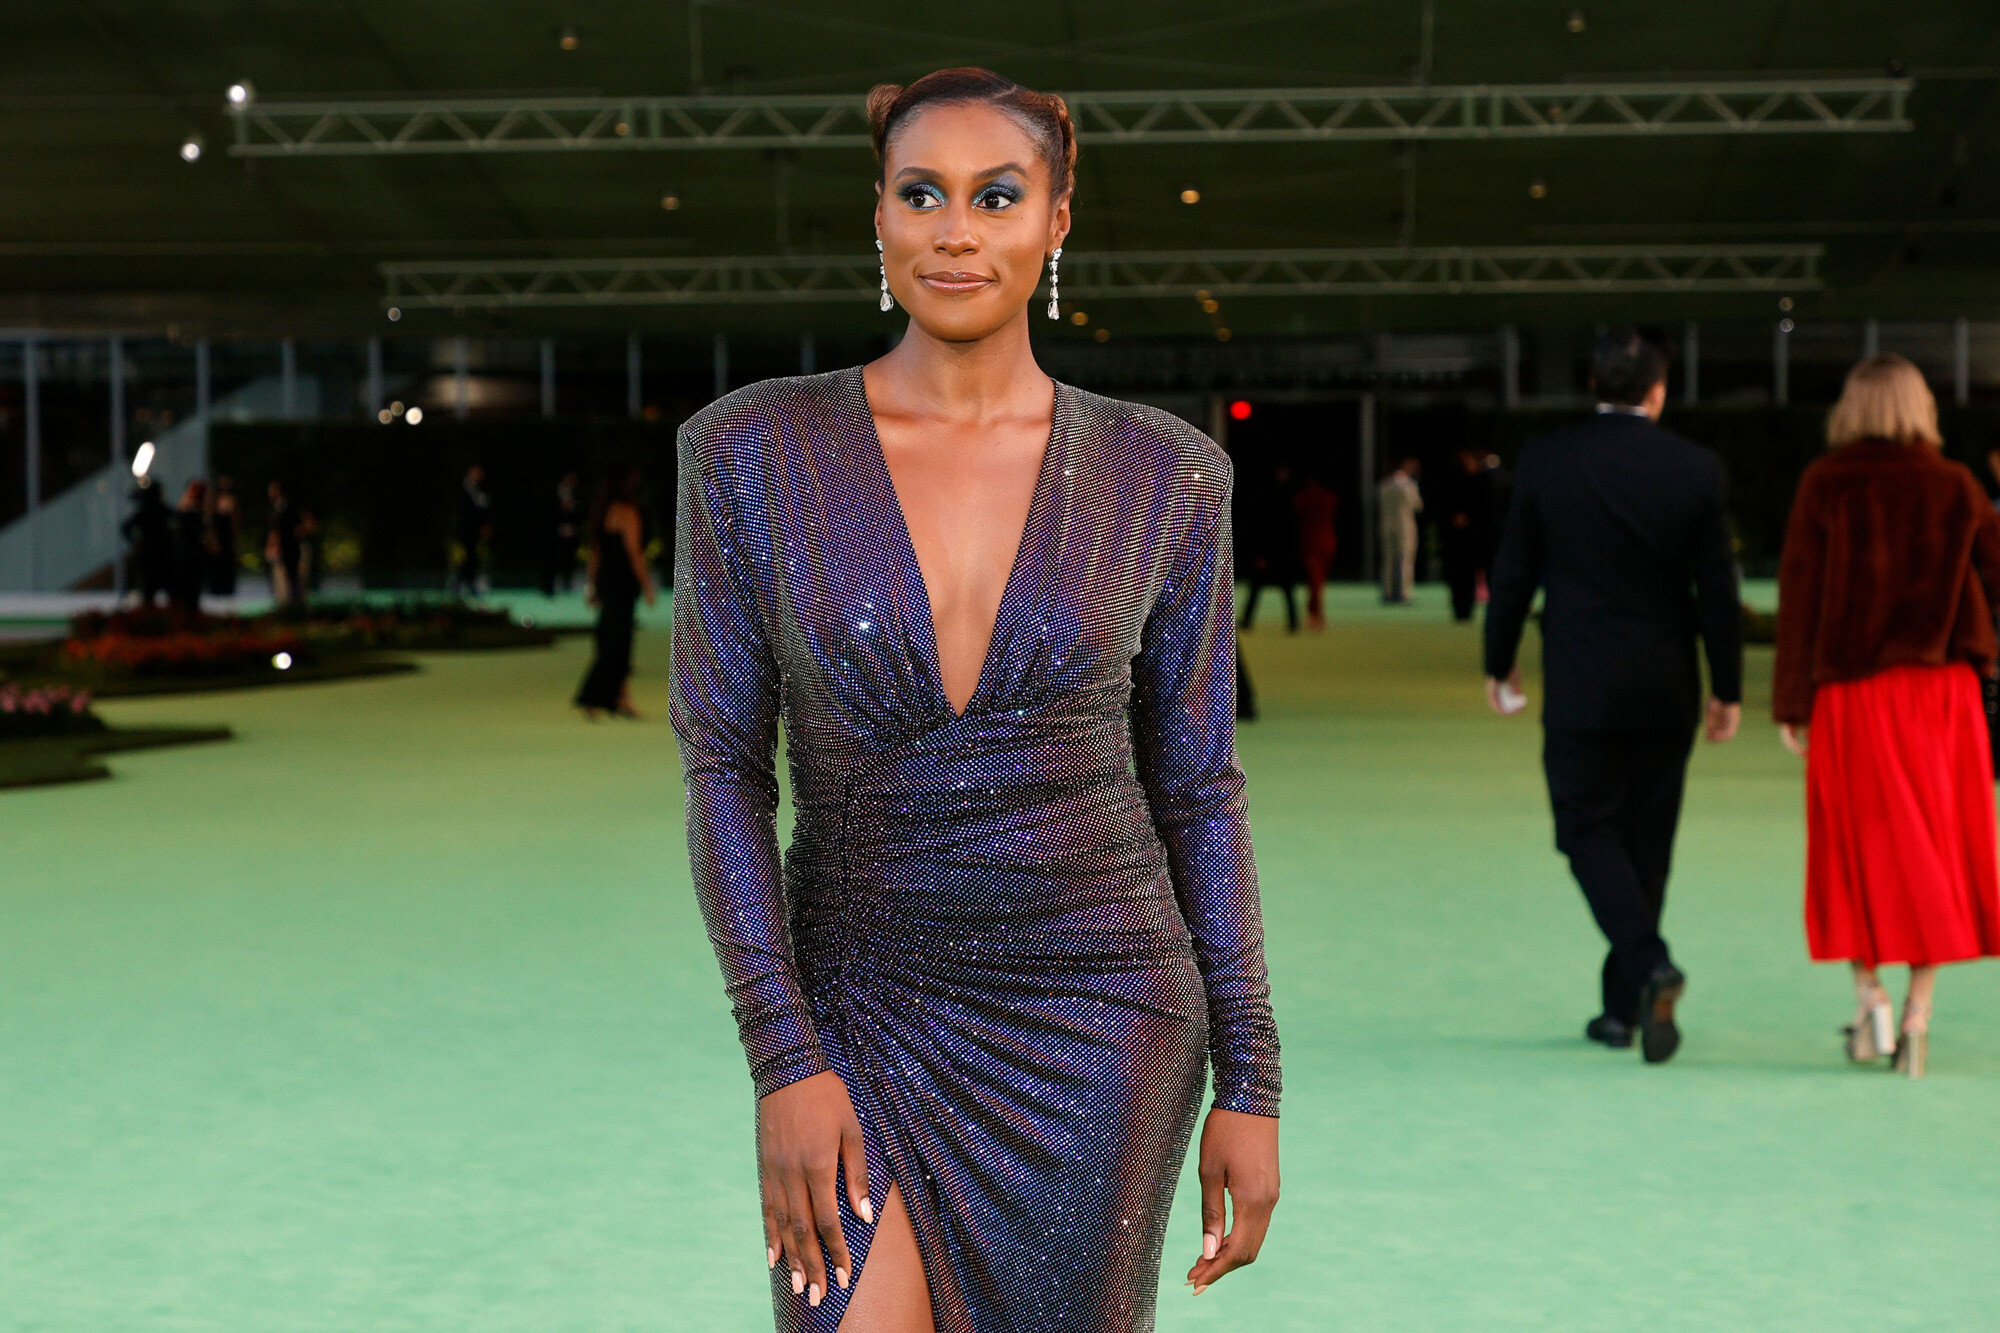 Issa Rae says she was told to include a White character in her shows to make audiences care